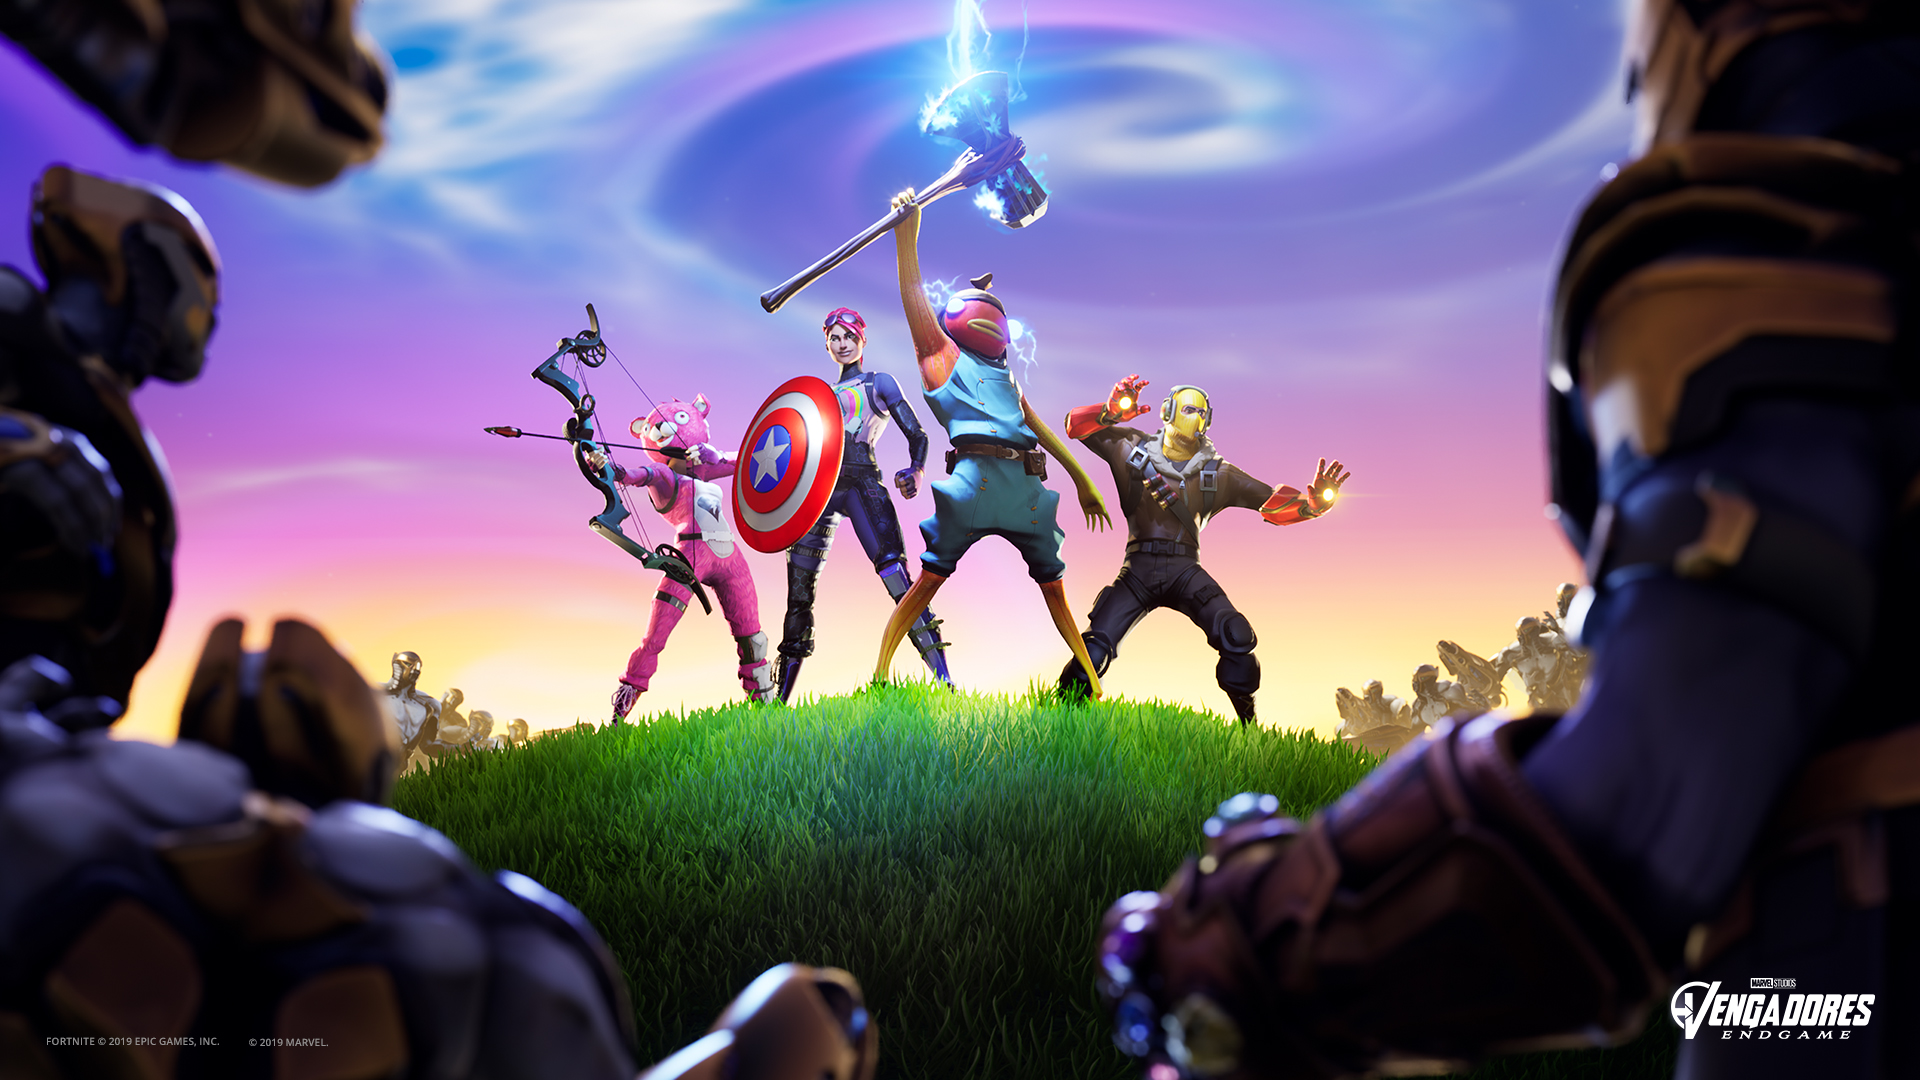 Fortnite characters with avengers weapons